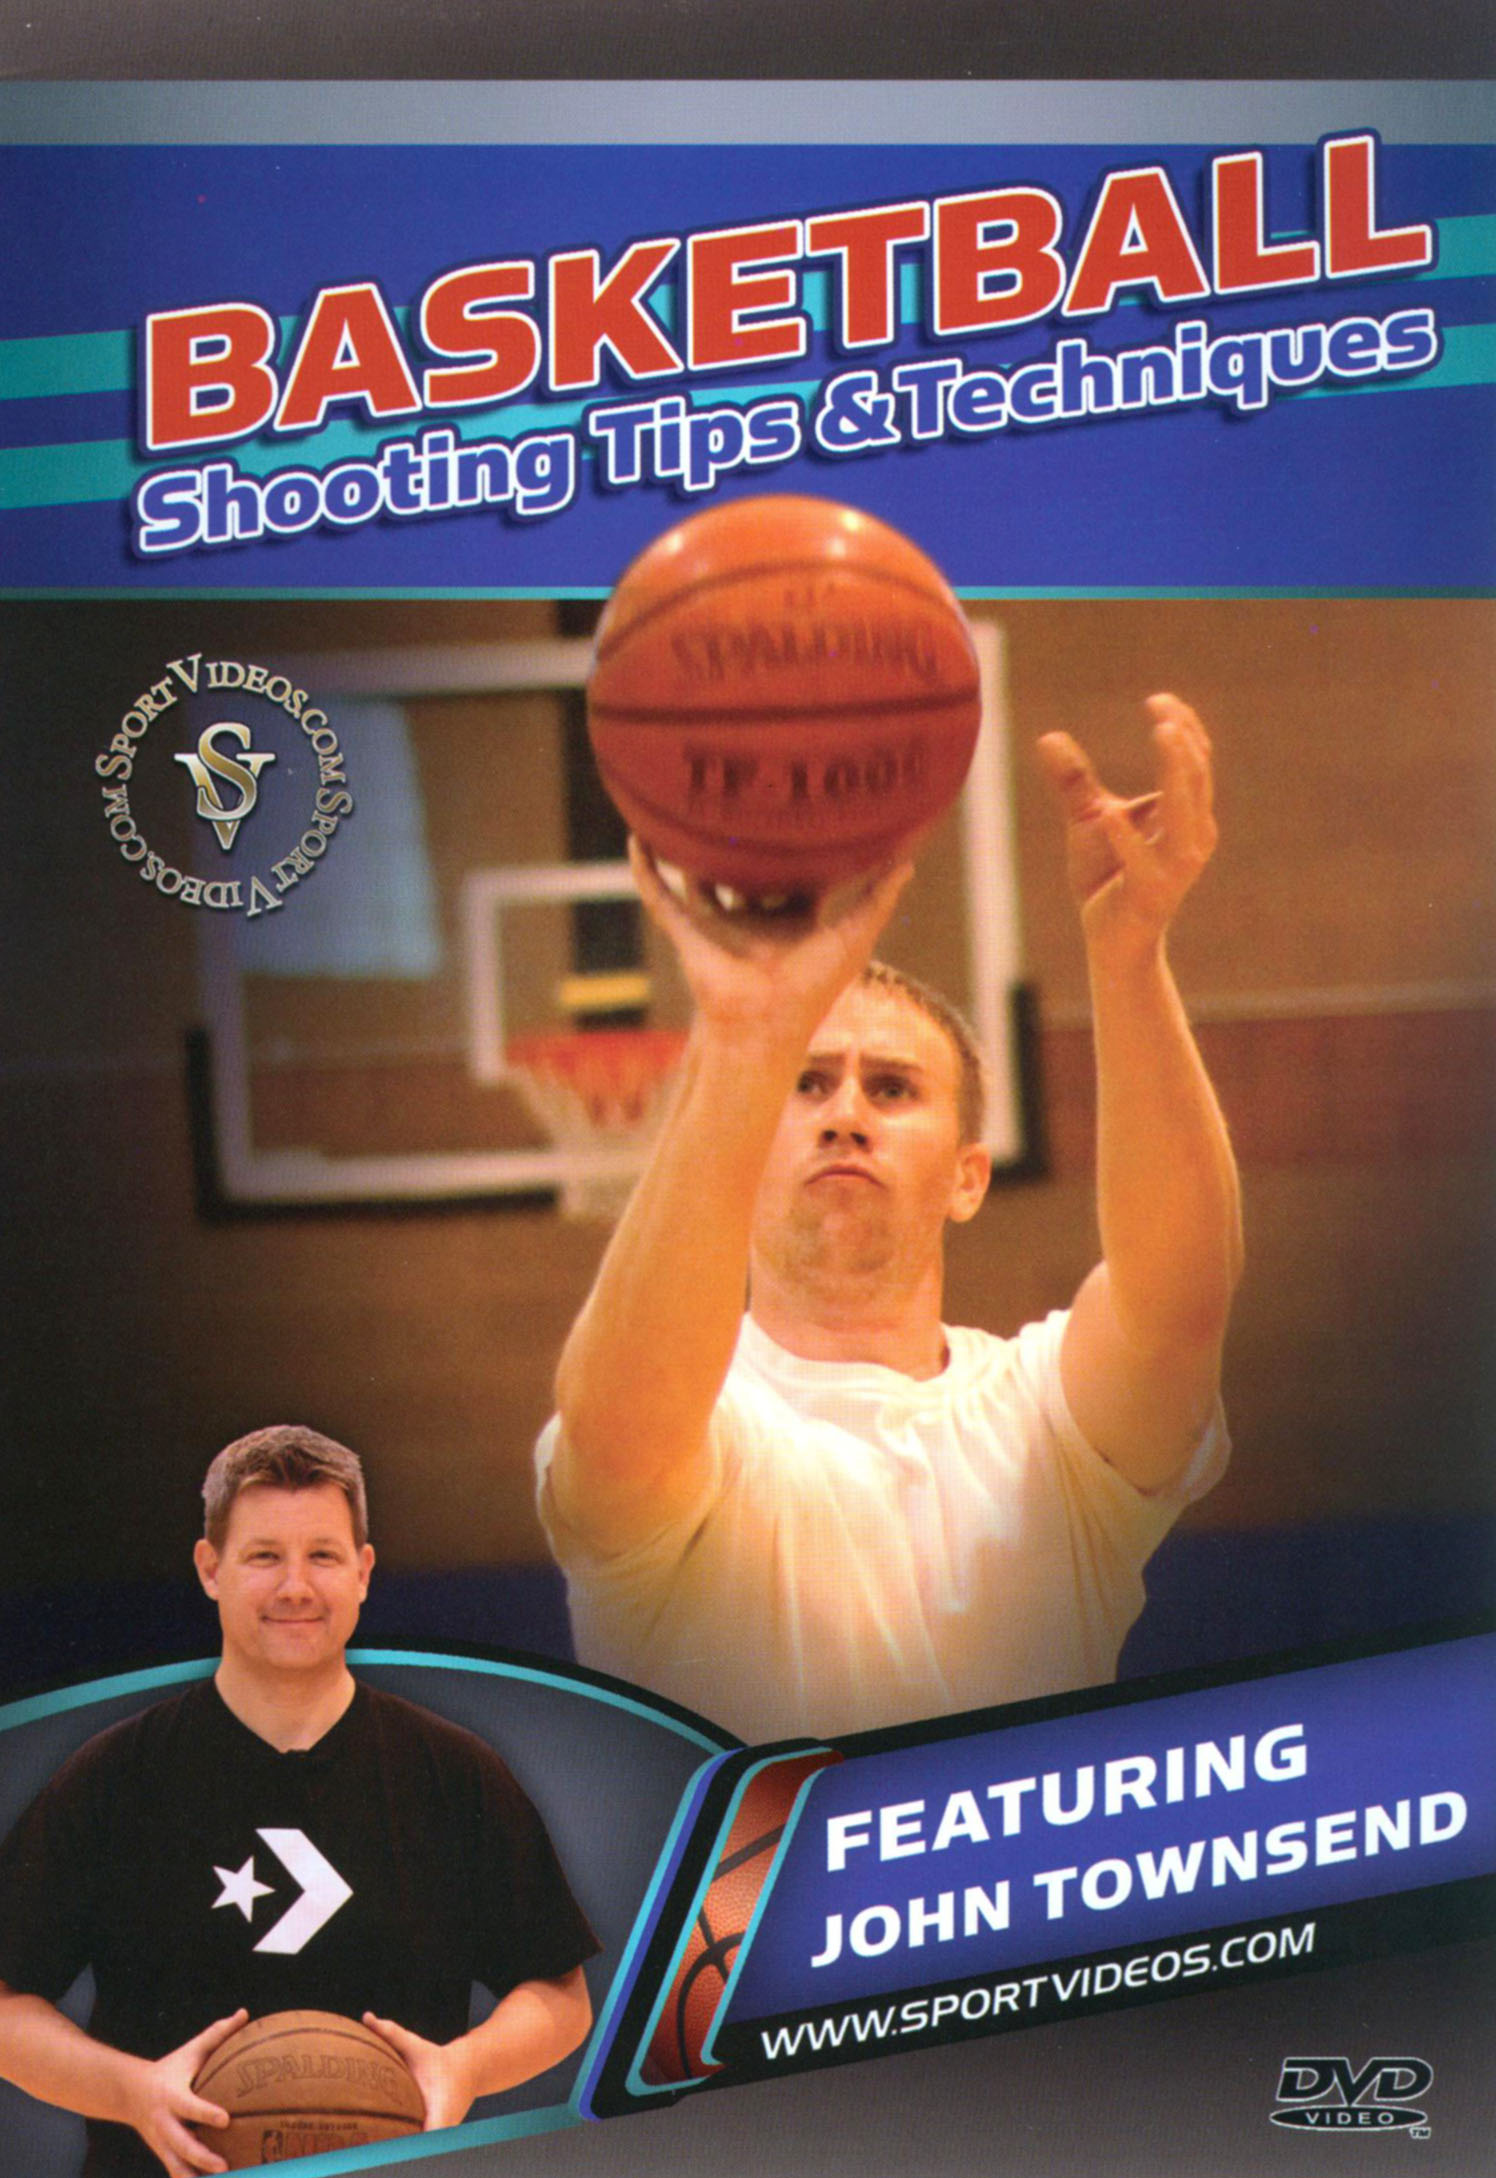 Basketball: Shooting Tips & Techniques